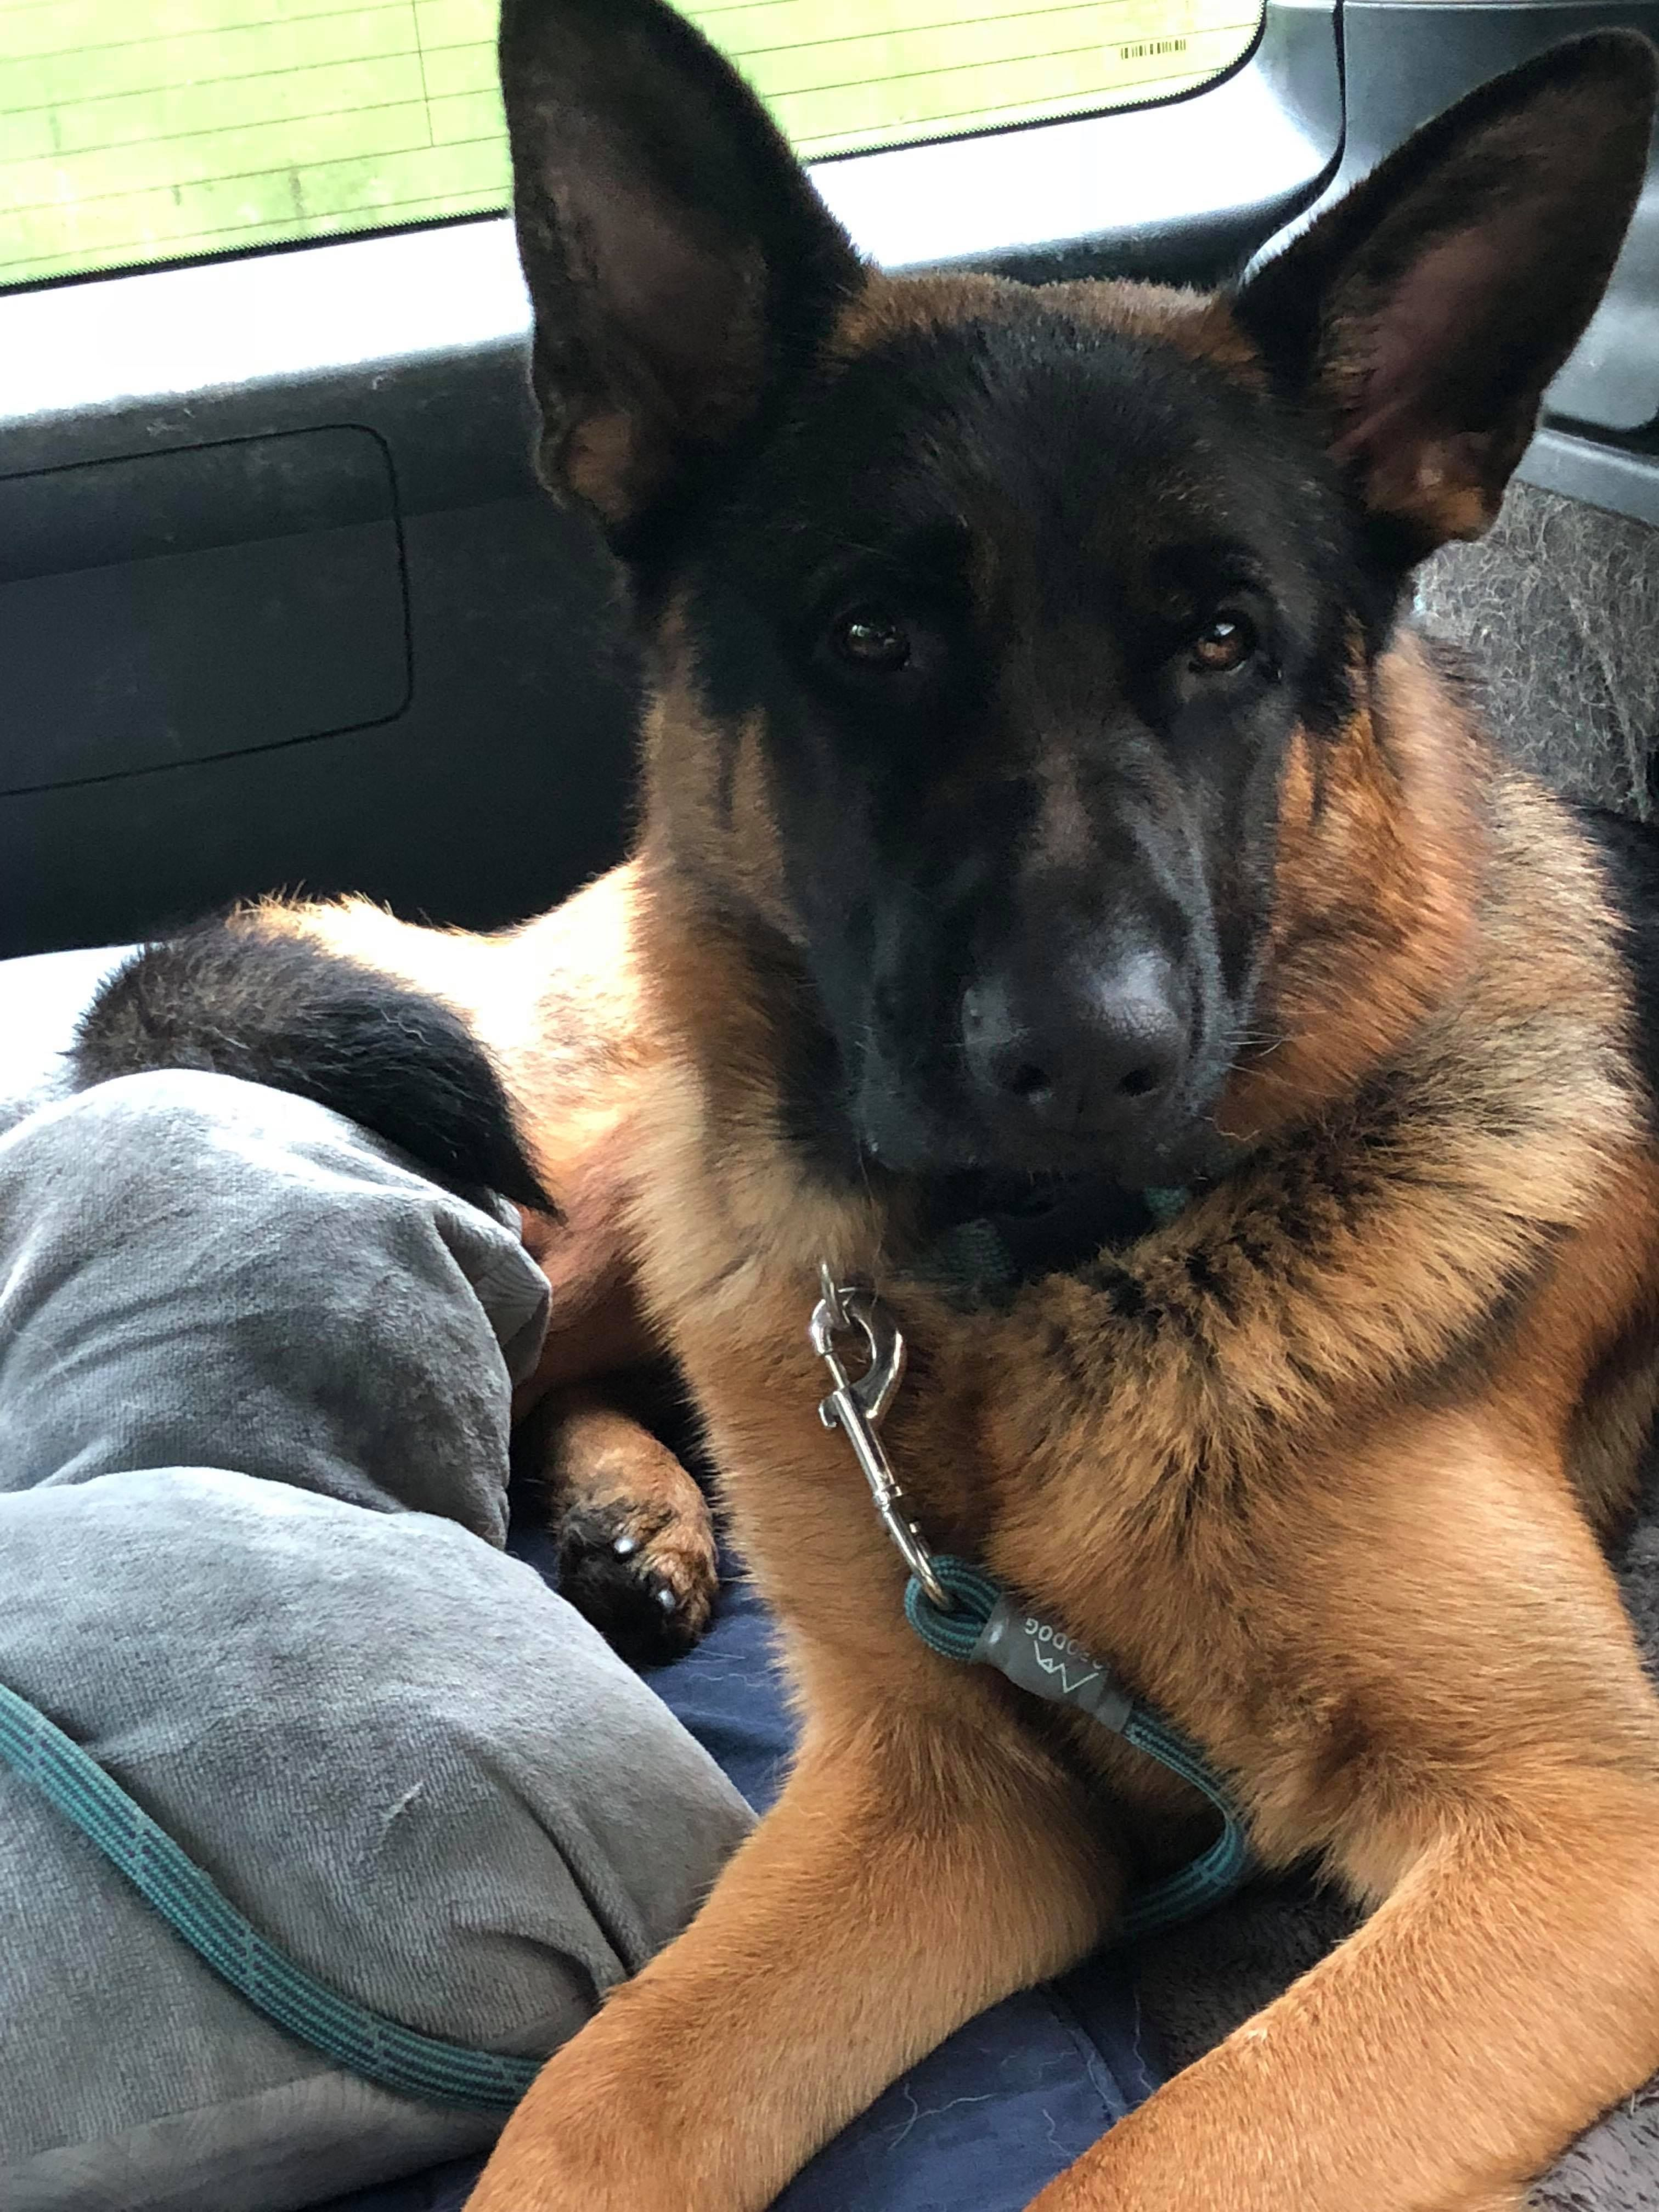 Xxon Is An Adoptable German Shepherd Dog Searching For A Forever Family Near Seattle Wa Use Petfind Dog Pond German Shepherd Dogs German Shepherd Photography